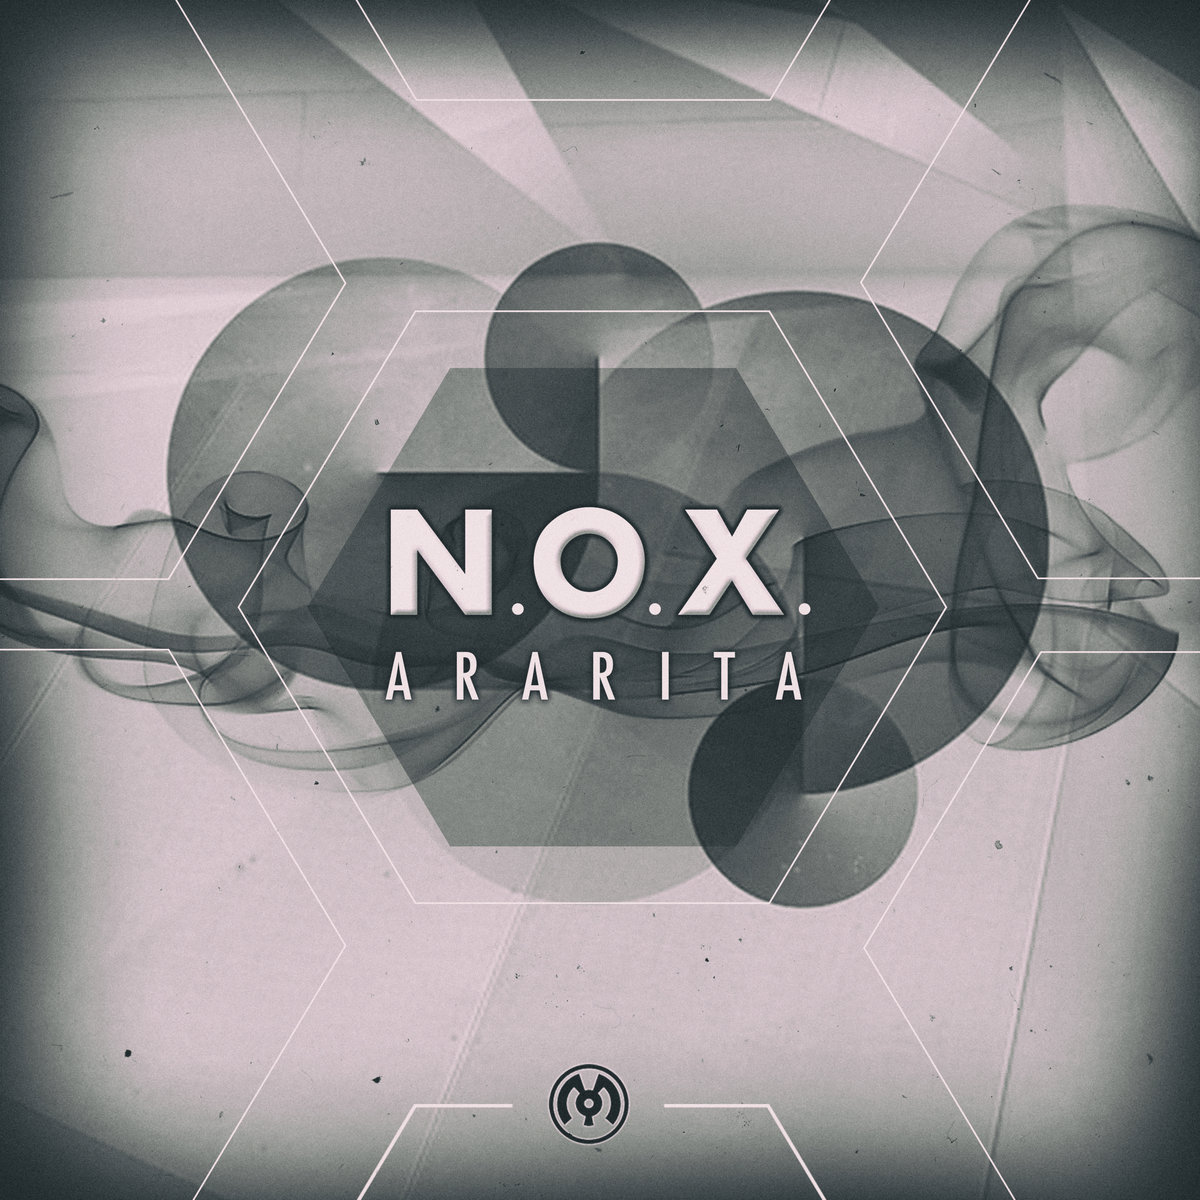 N.O.X. - K Hole @ 'Ararita' album (electronic, dubstep)